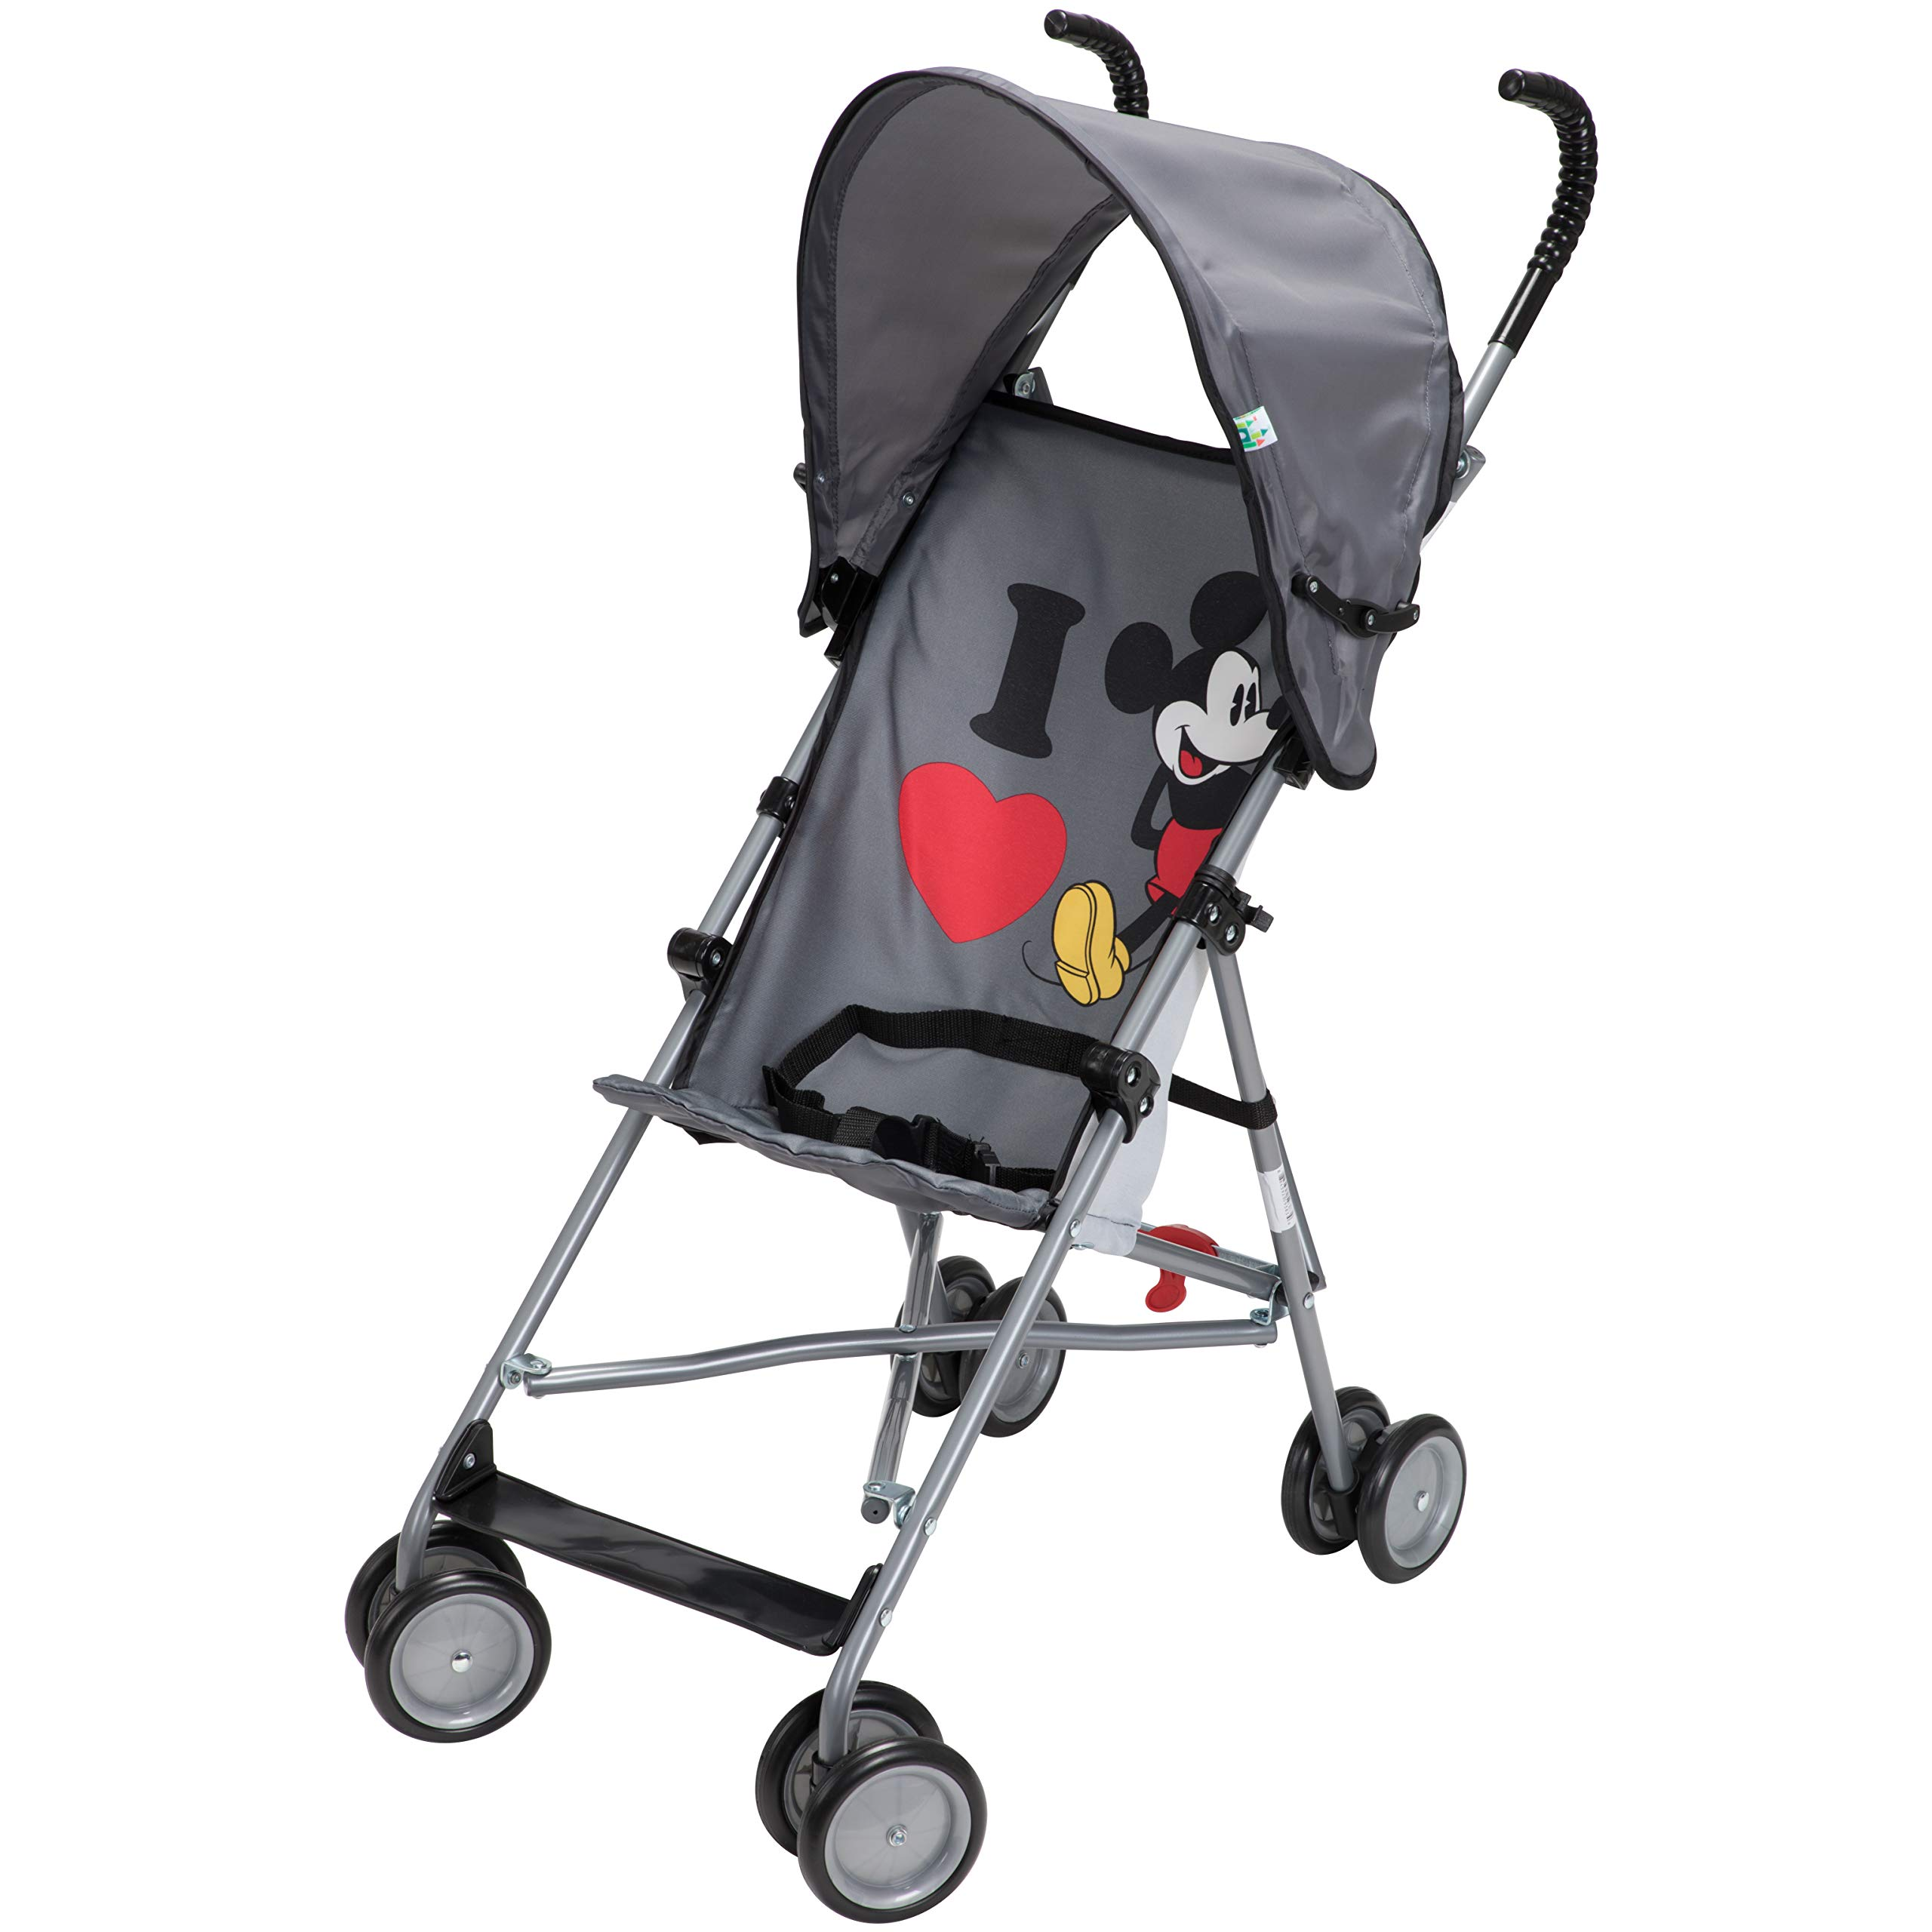 Disney Umbrella Stroller with Canopy, I Heart Mickey by Disney (Image #2)